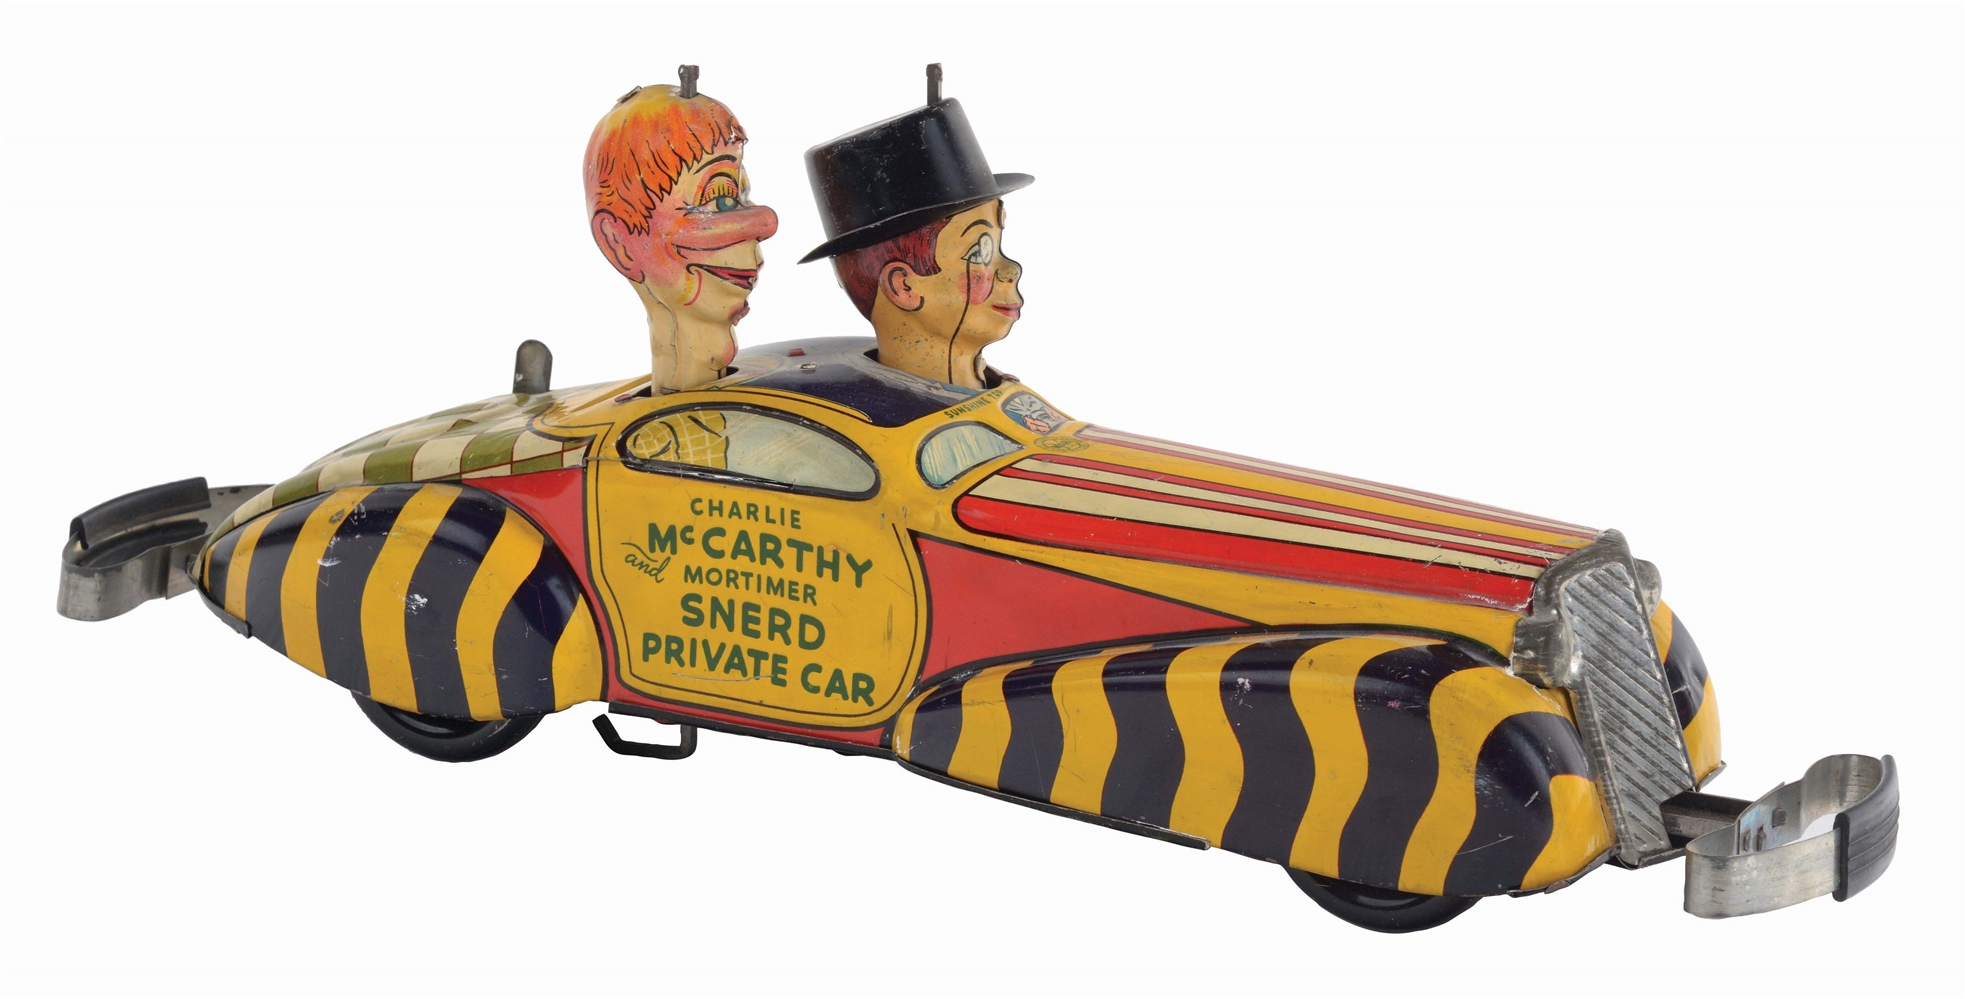 MARX TIN-LITHO CHARLIE MCCARTHY & MORTIMER SNERD PRIVATE CAR.